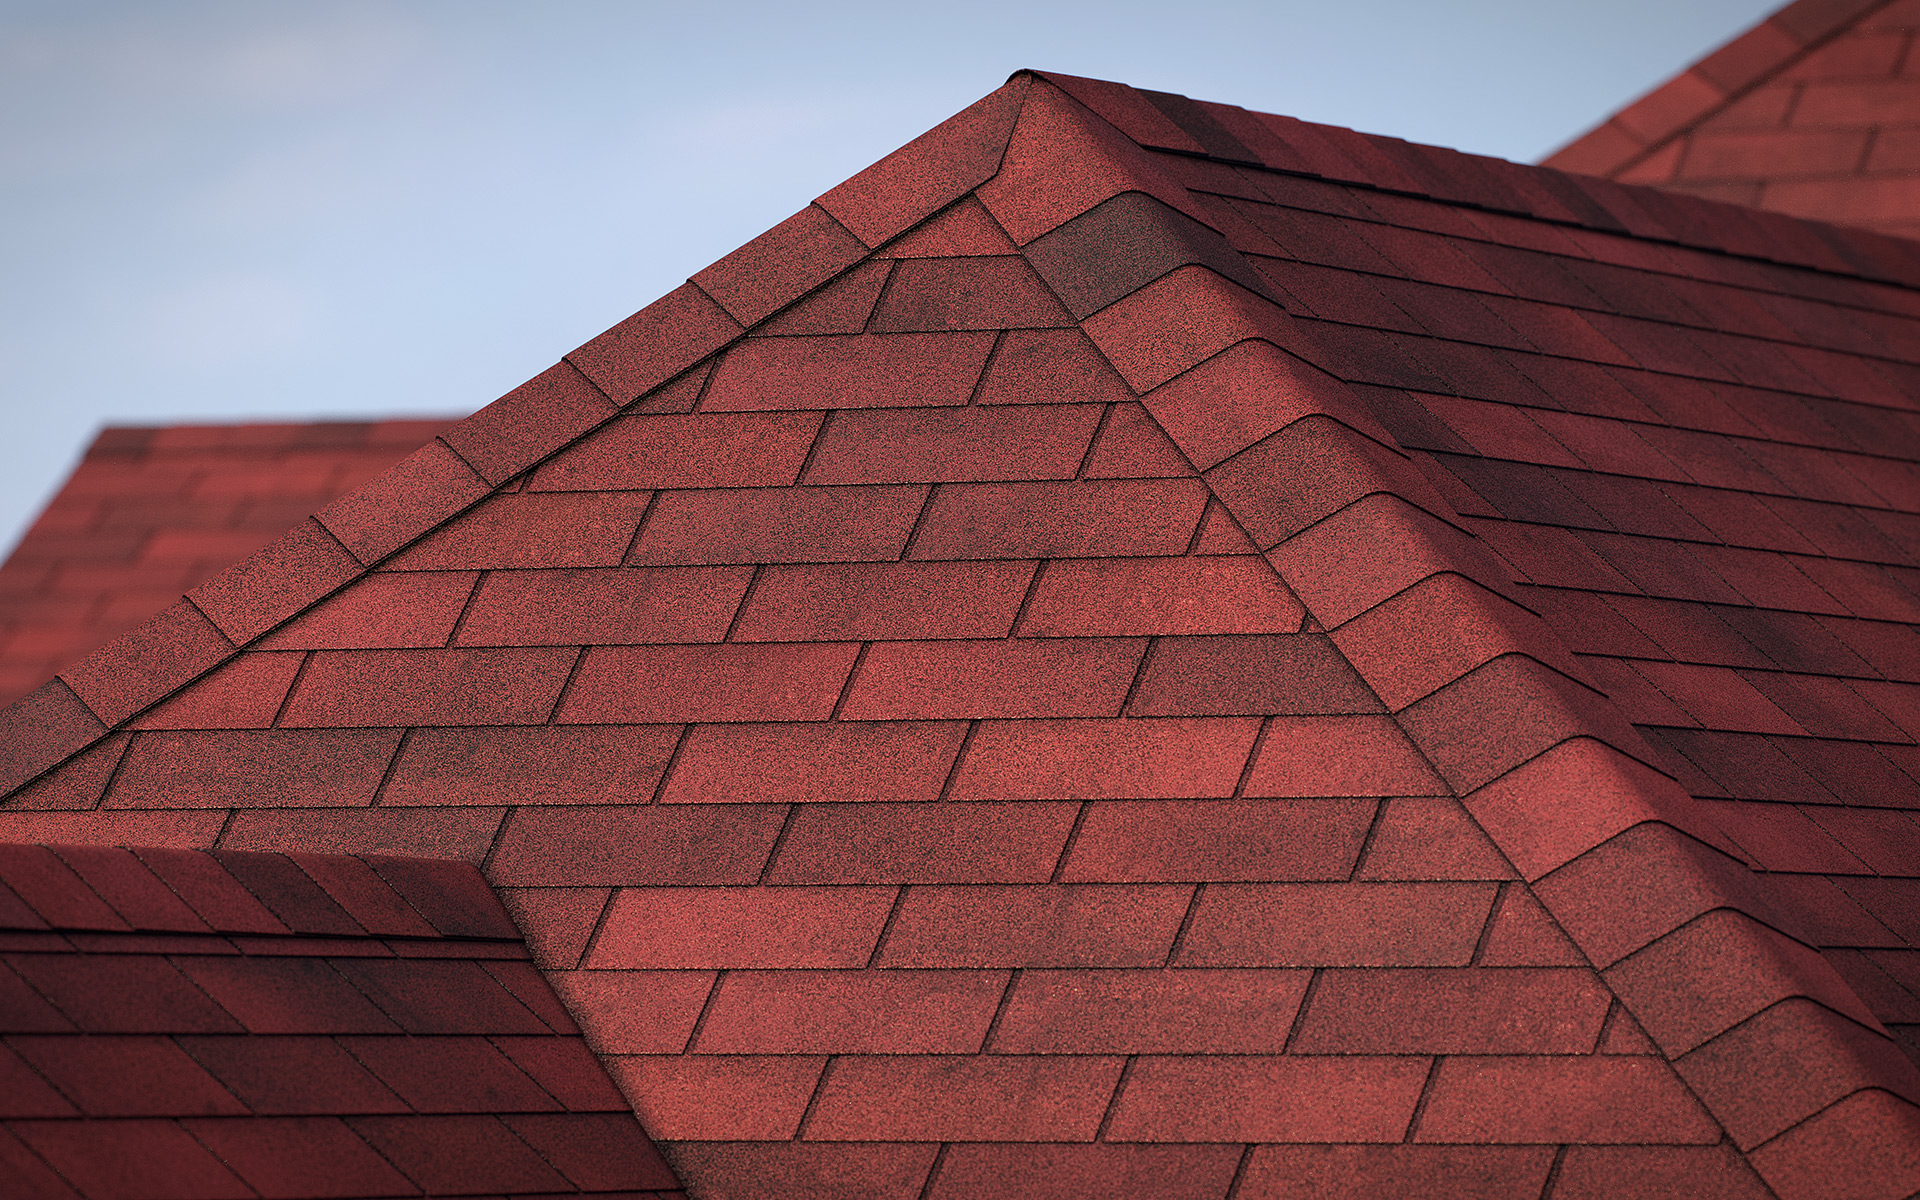 3-tab asphalt roof shingles red color 3D model preset for 3dsmax and RailClone. Rendered with vray, made for arch-viz.